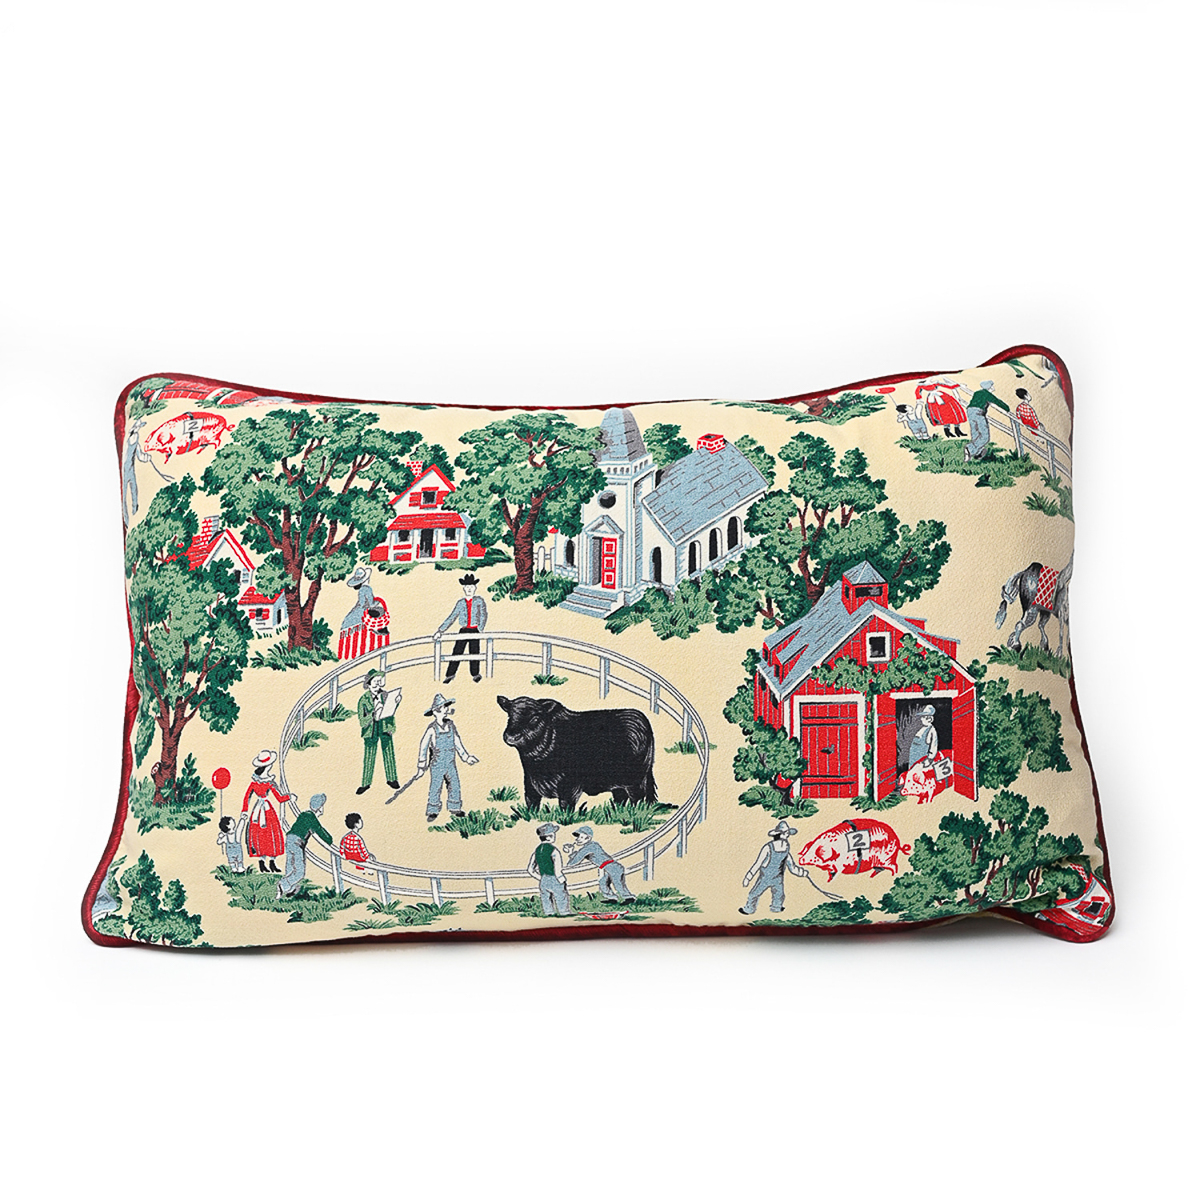 Come to the Fair Bed Pillow: 28 x 18